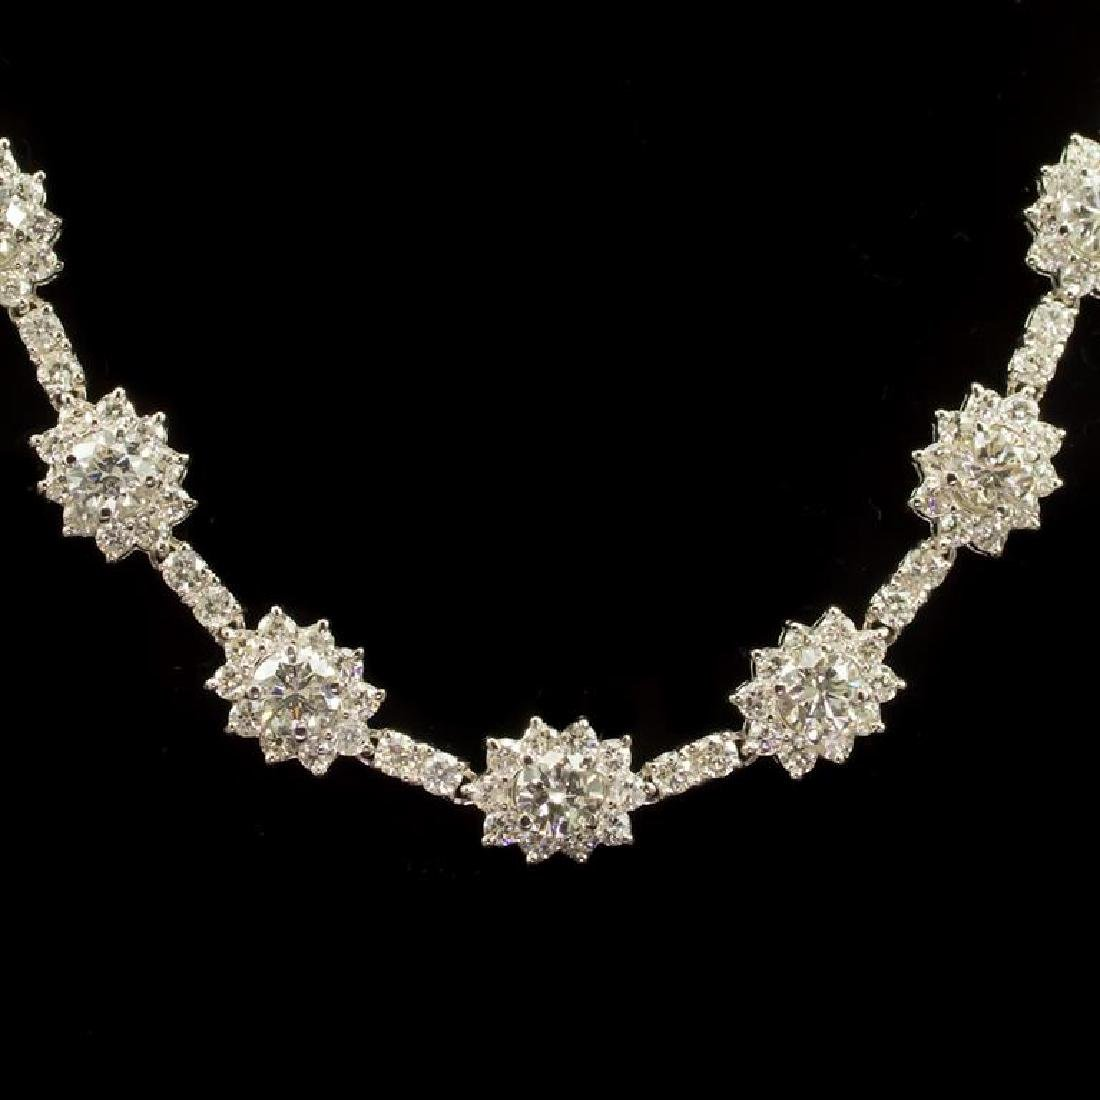 18K Gold 18.22ct Diamond Necklace